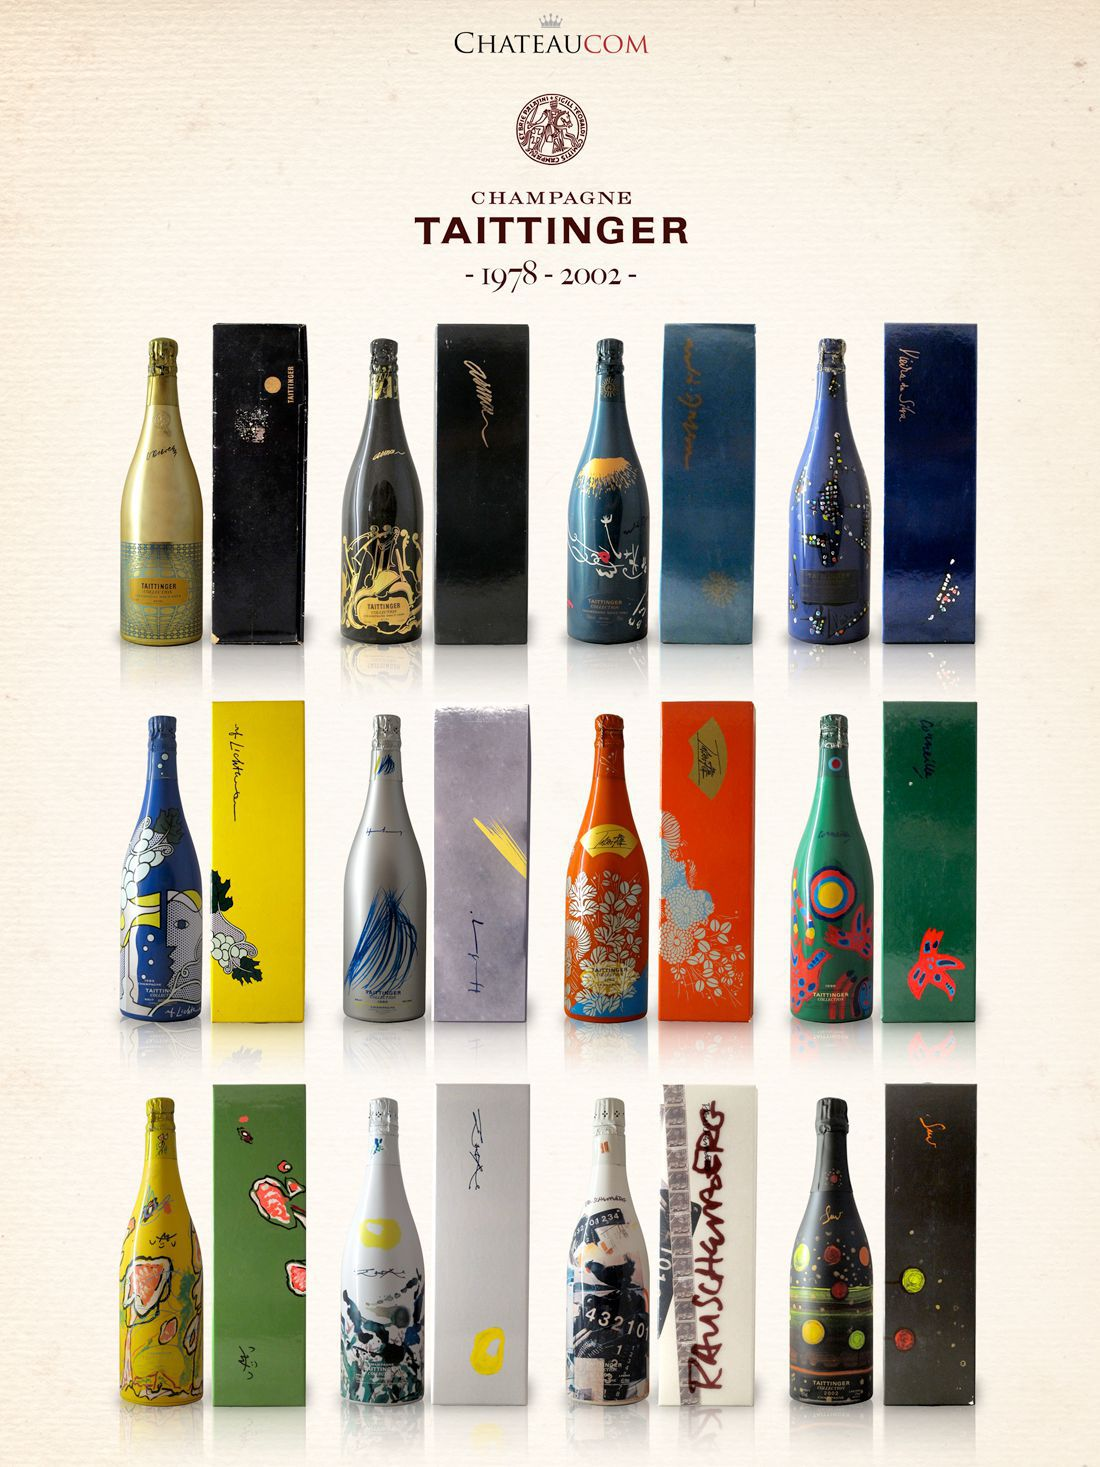 Collection Taittinger 1978-2002